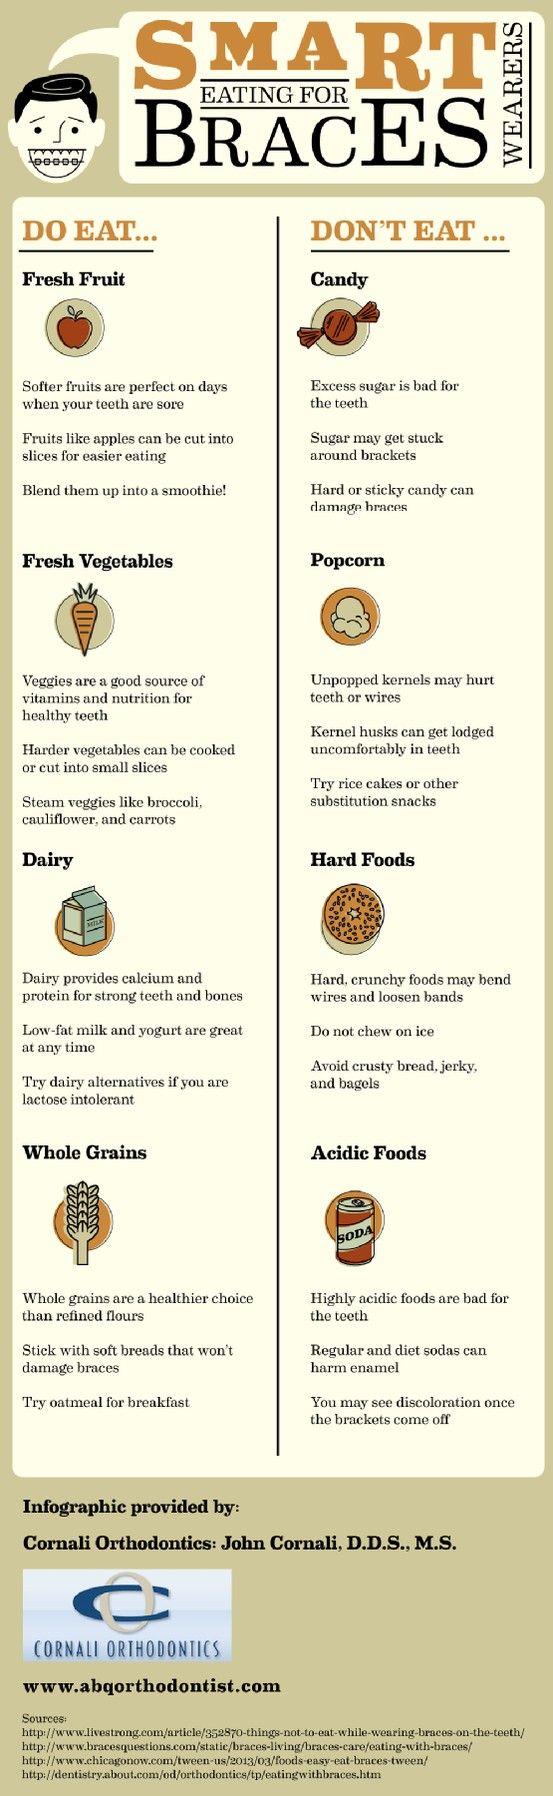 If you've just started orthodontic treatment, you're probably wondering what kinds of food are safe to eat while wearing braces. Candy and hard or crunchy foods can bend wires and loosen bands, so it's best to stick with soft, nutritious foods. Take a look at this infographic to learn more.: